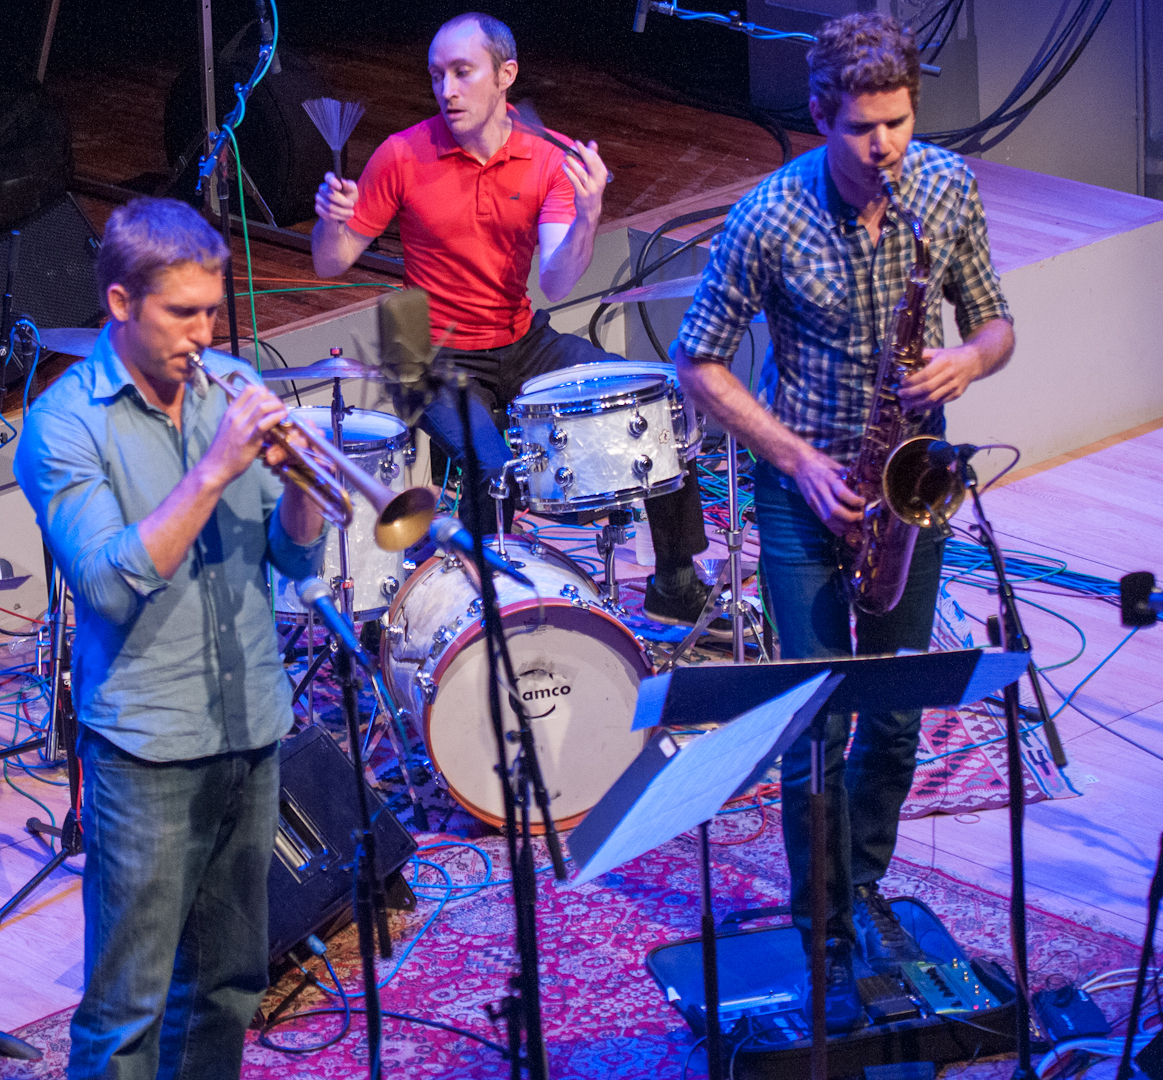 Shane Endsley, Nate Wood and Ben Wendel with Kneebody at the Vision Festival 2012